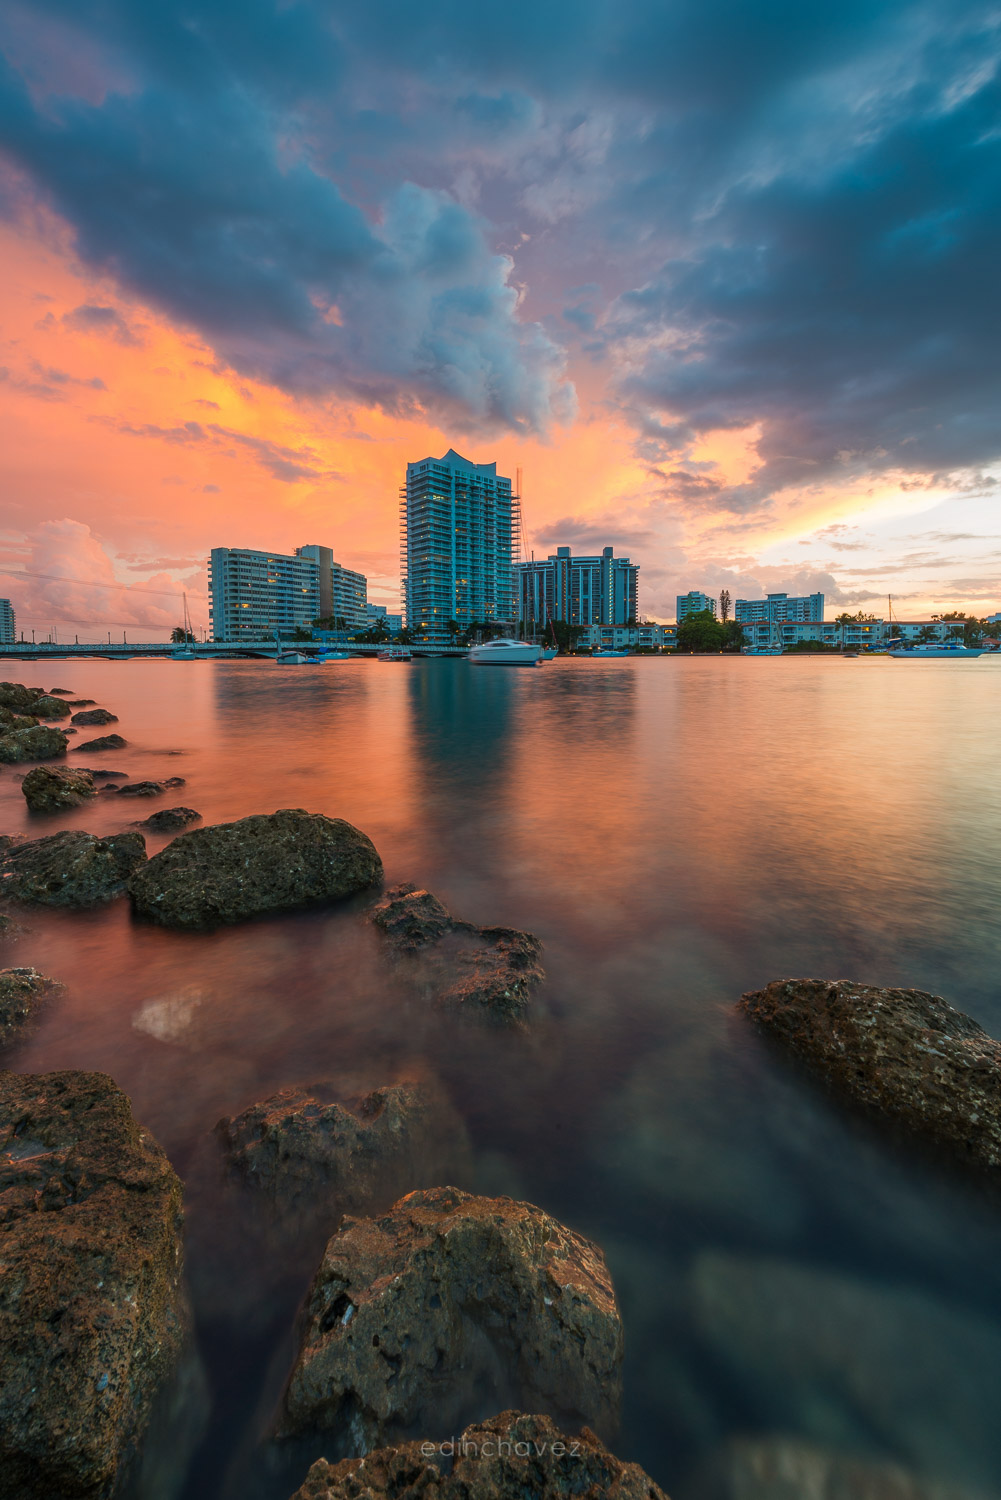 The 10 Best Photography Spots In Miami Beach